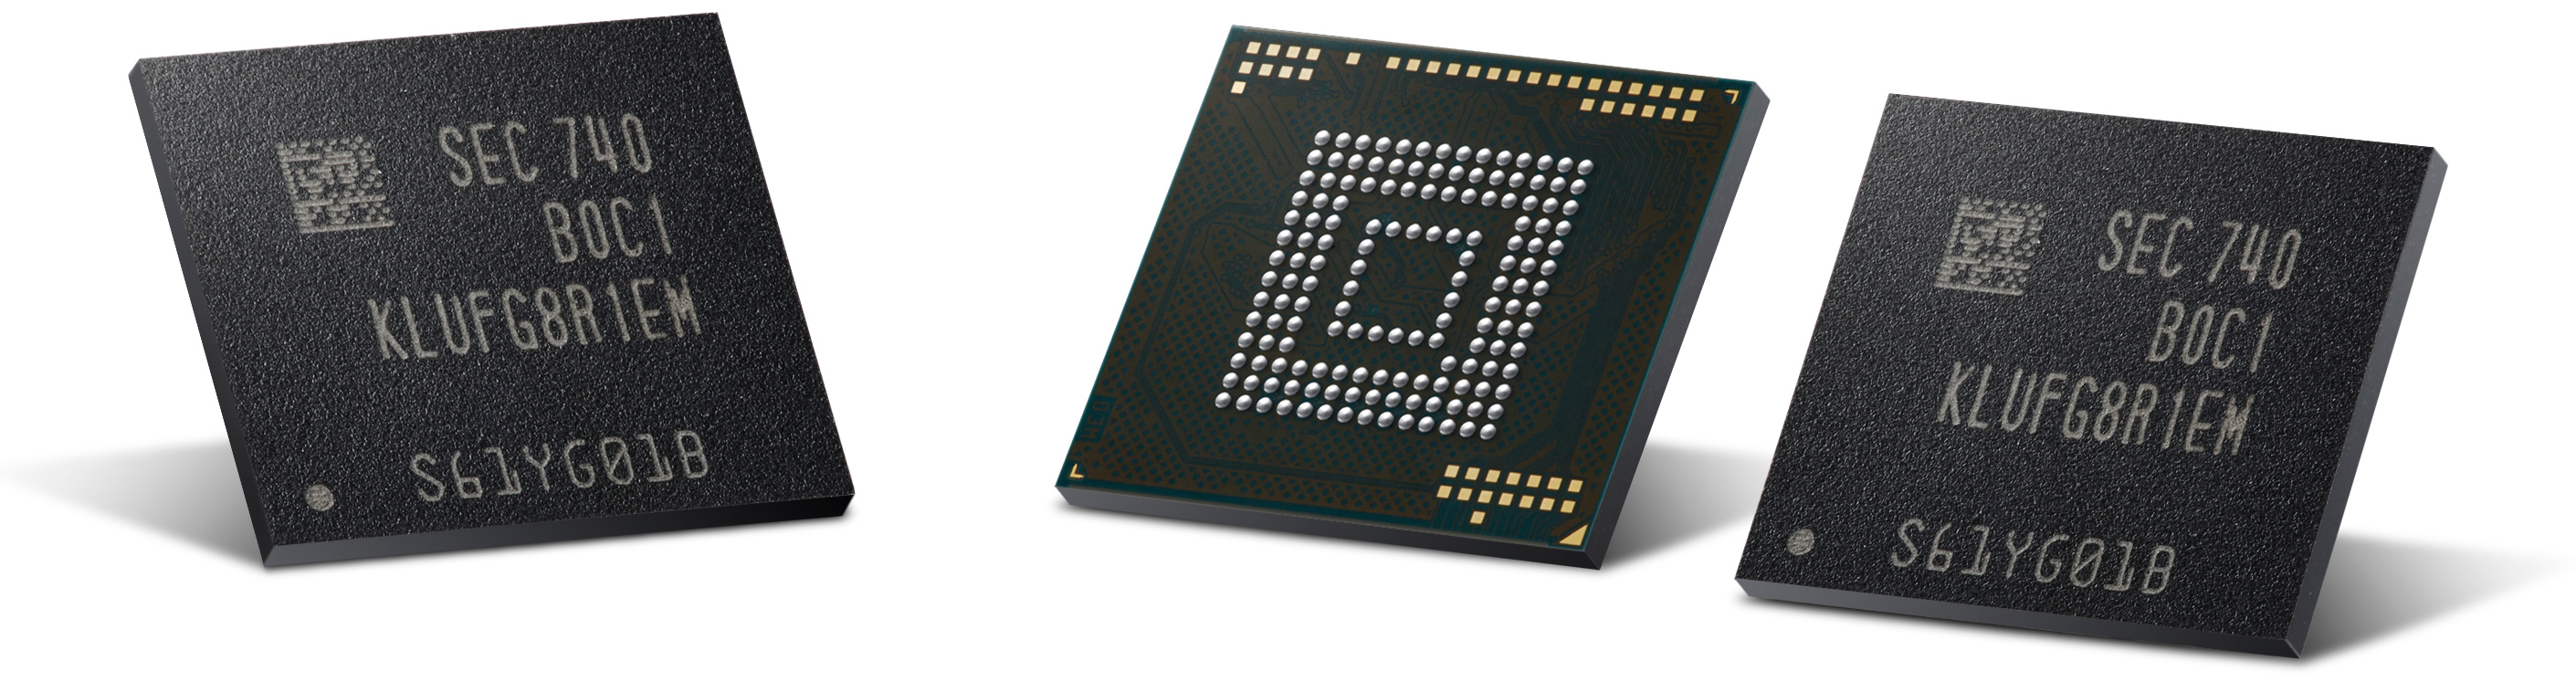 Samsung Starts Production of 512 GB UFS NAND Flash Memory